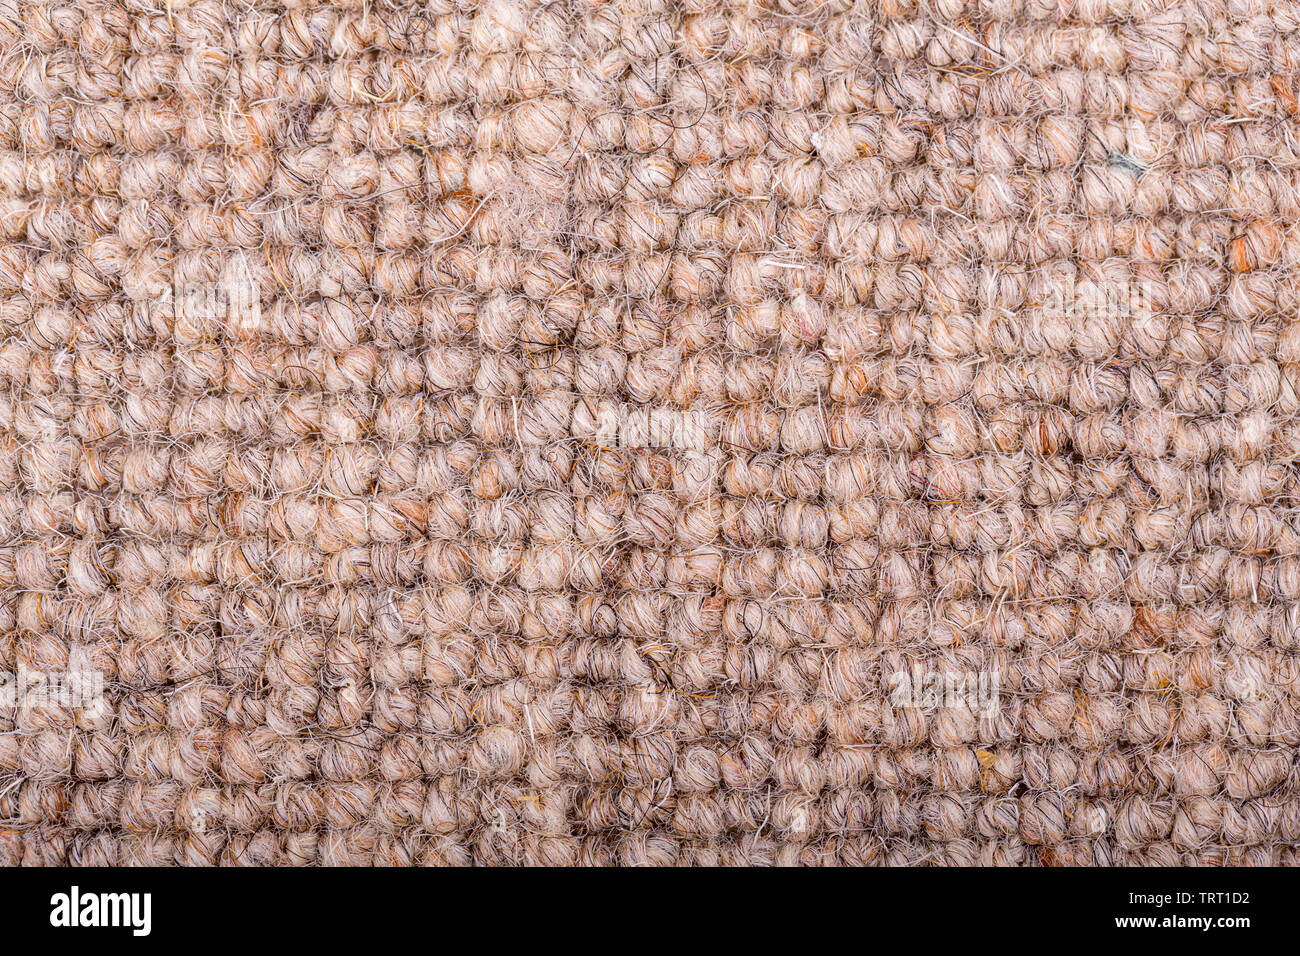 As close up of a loop pile wool carpet in neutral, beige and fawn tones. - Stock Image